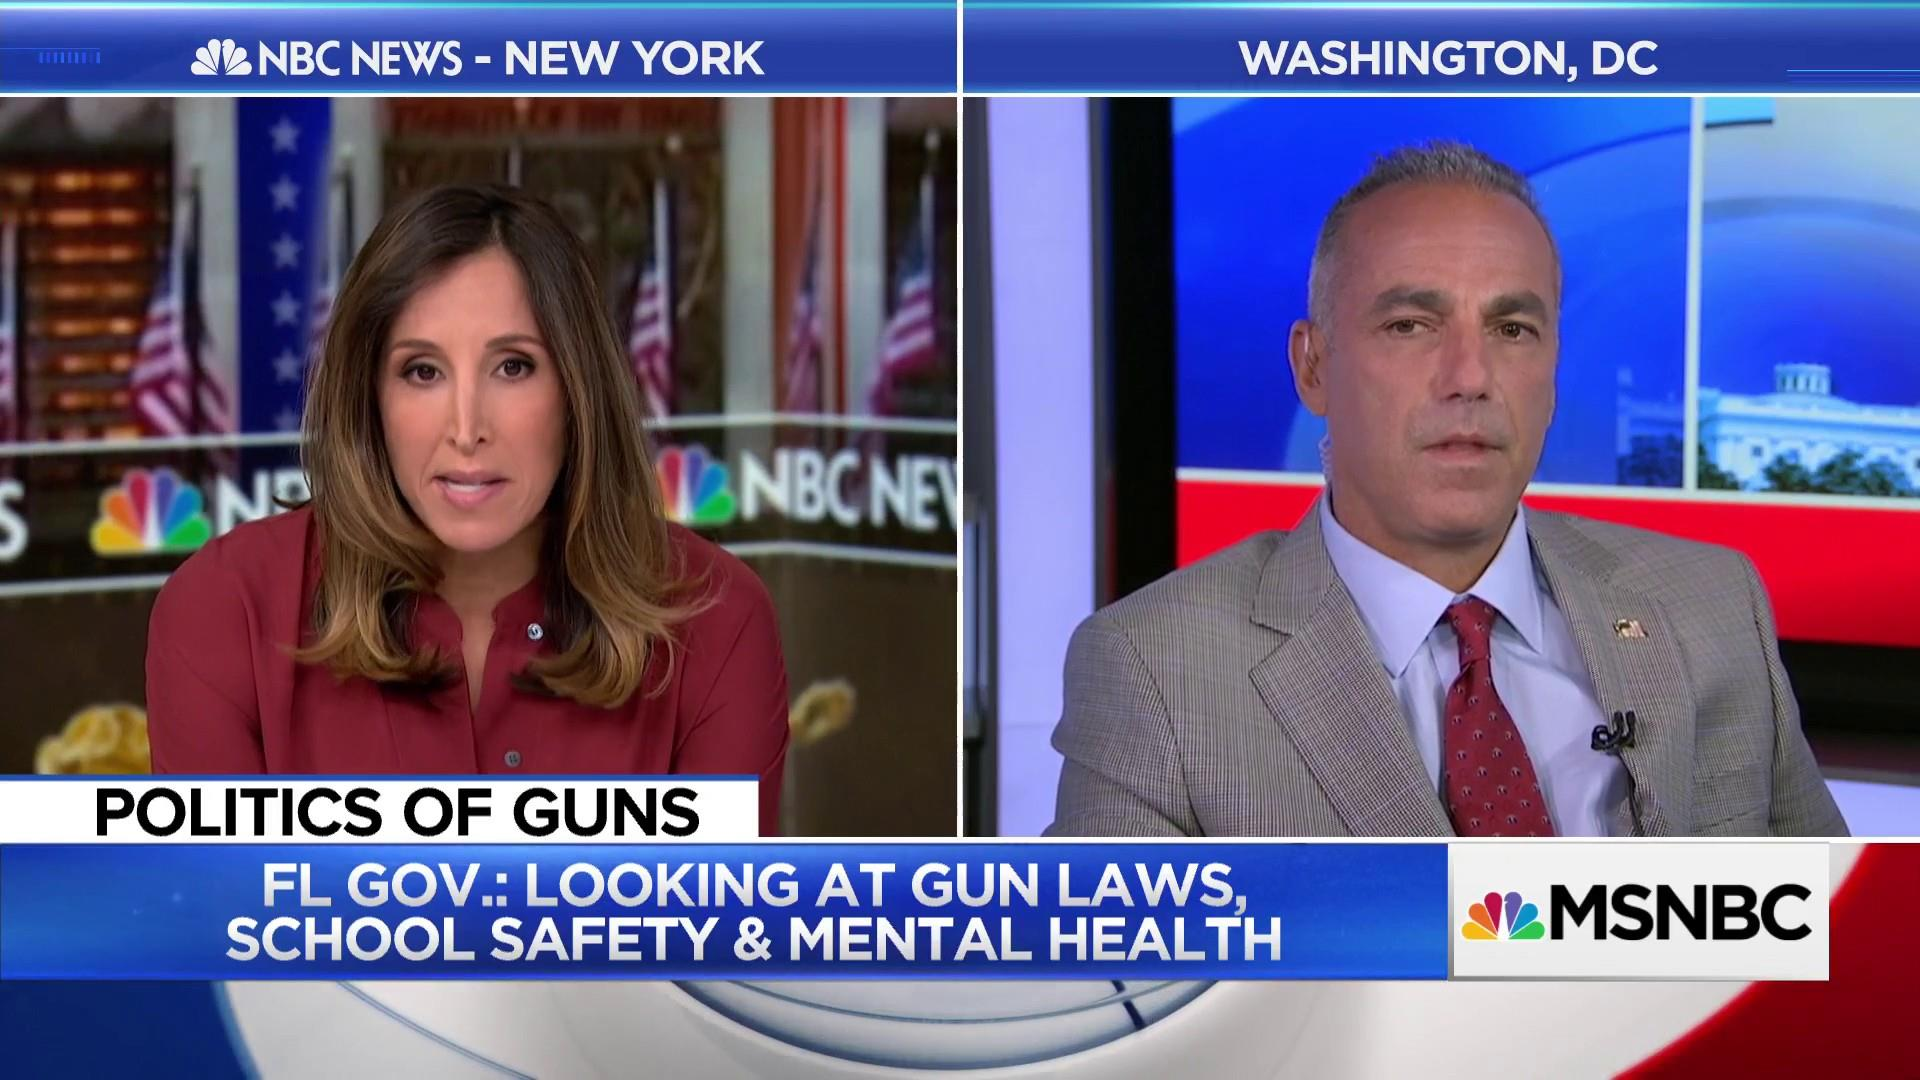 Parkland father 'It's about securing schools'